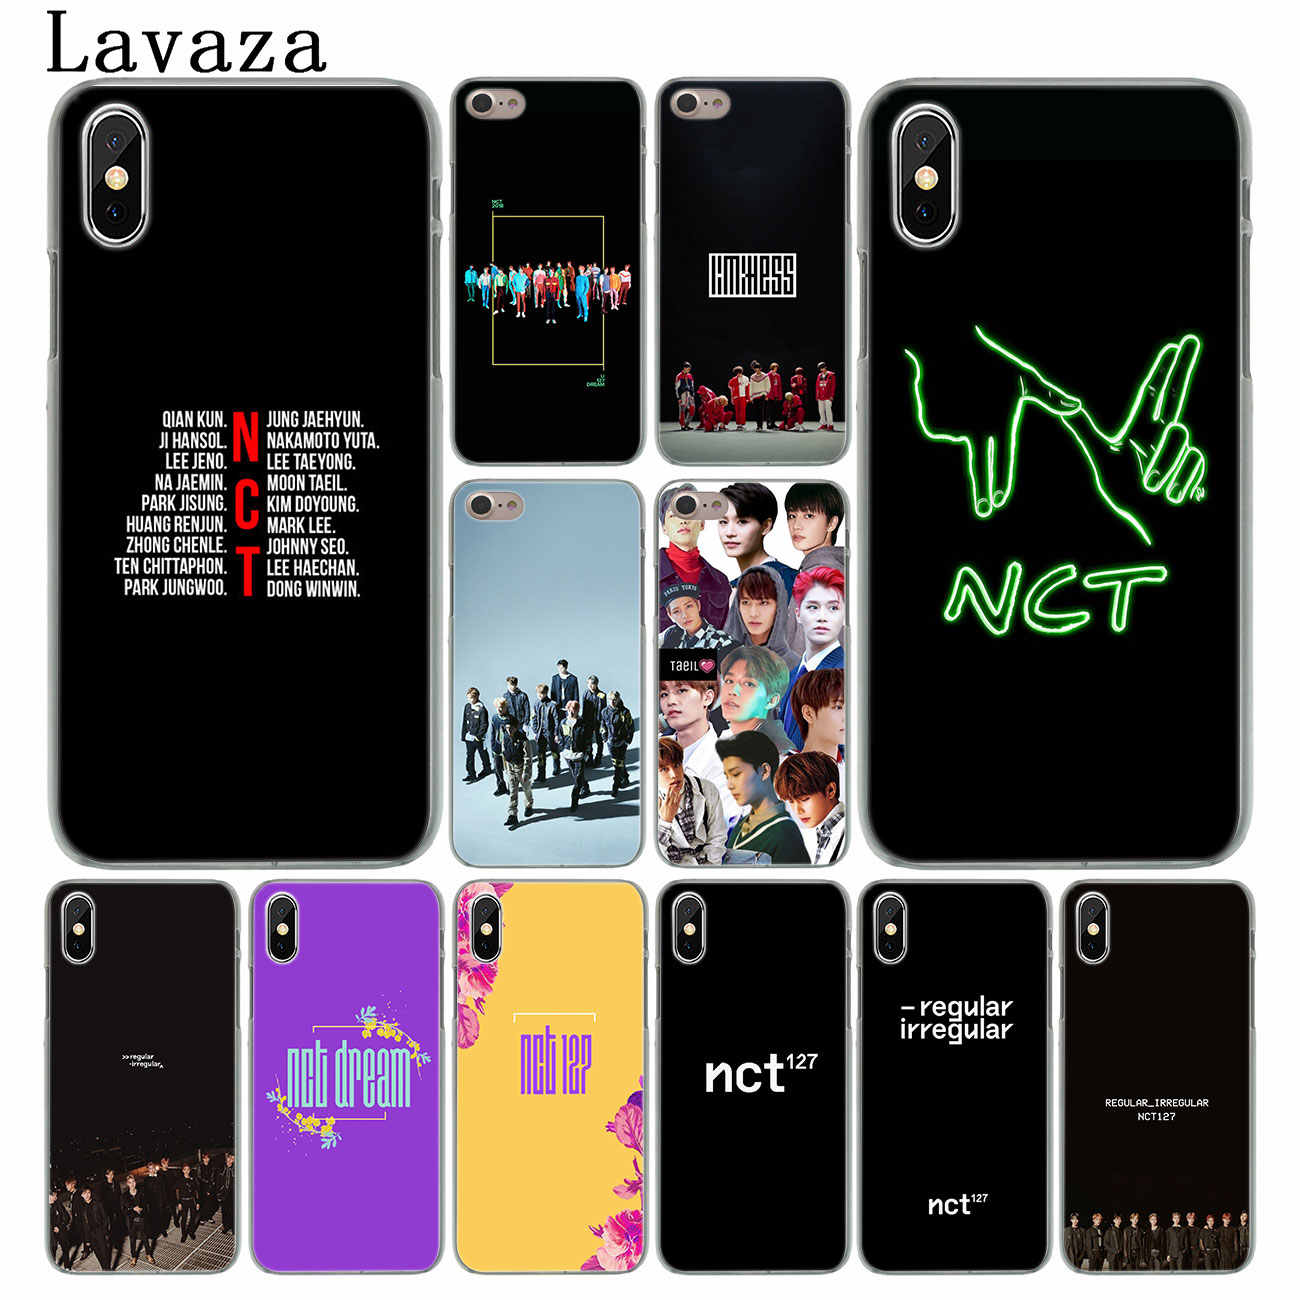 Lavaza NCT 127 Hard Phone Case for iPhone XR XS X 11 Pro Max 10 7 8 6 6S 5 5S SE 4S 4 Cover